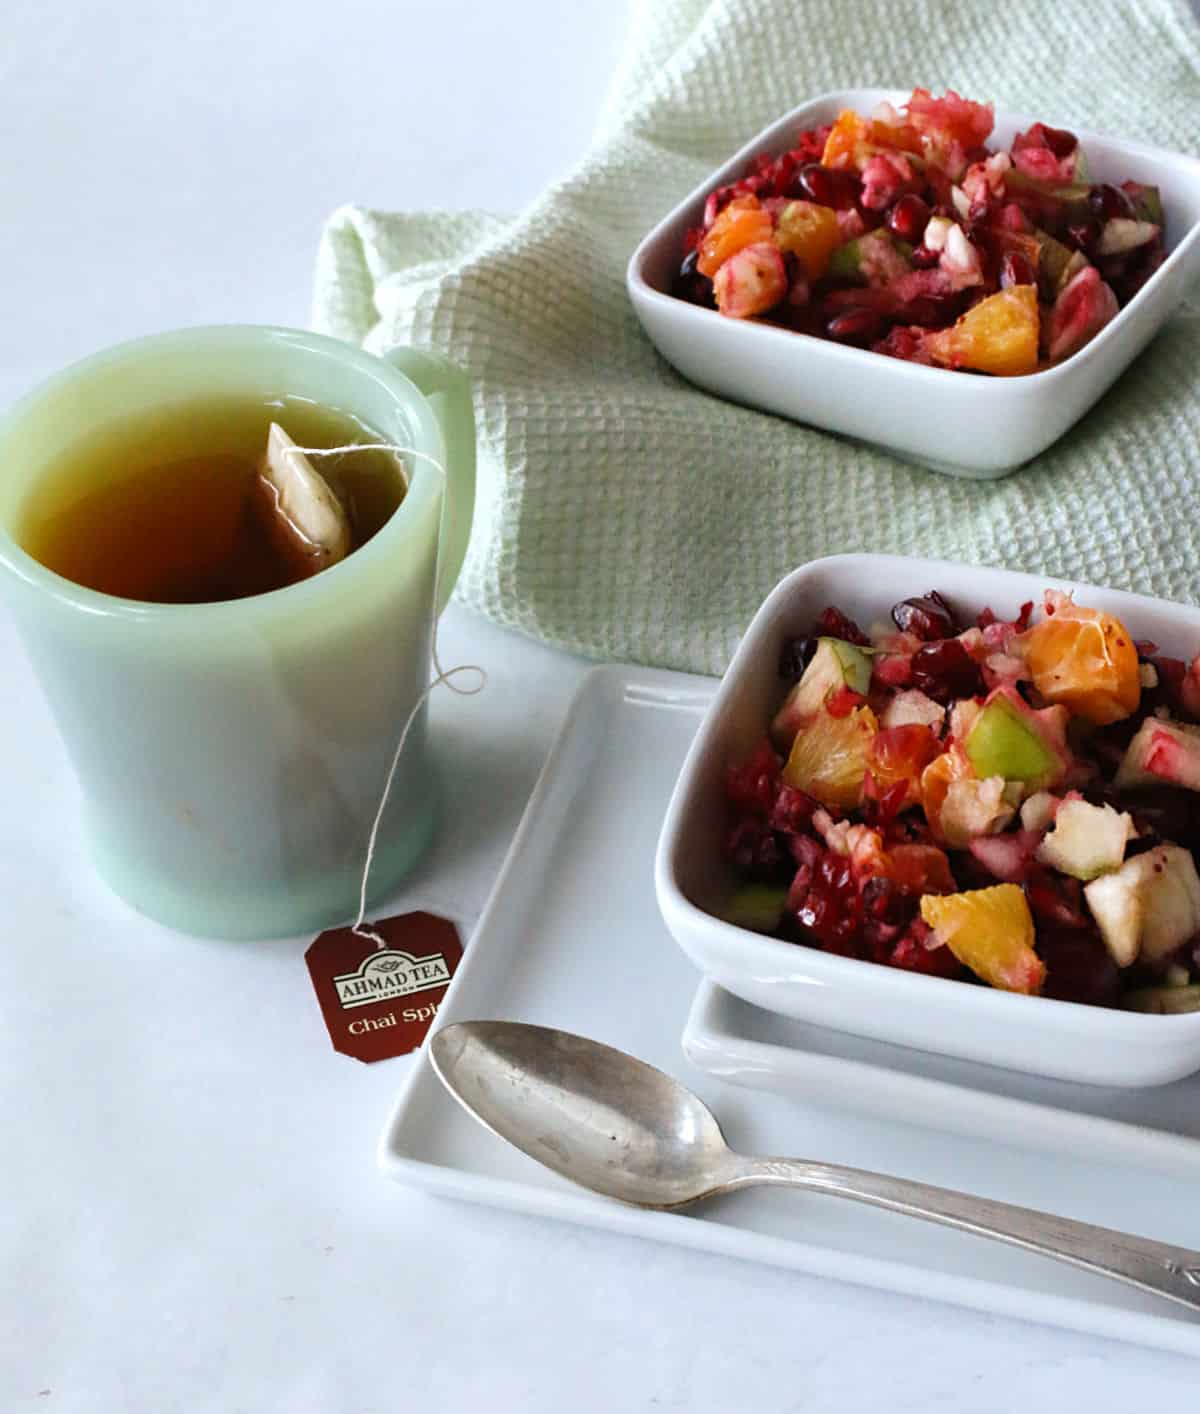 a cup of tea and bowls of fruit salad